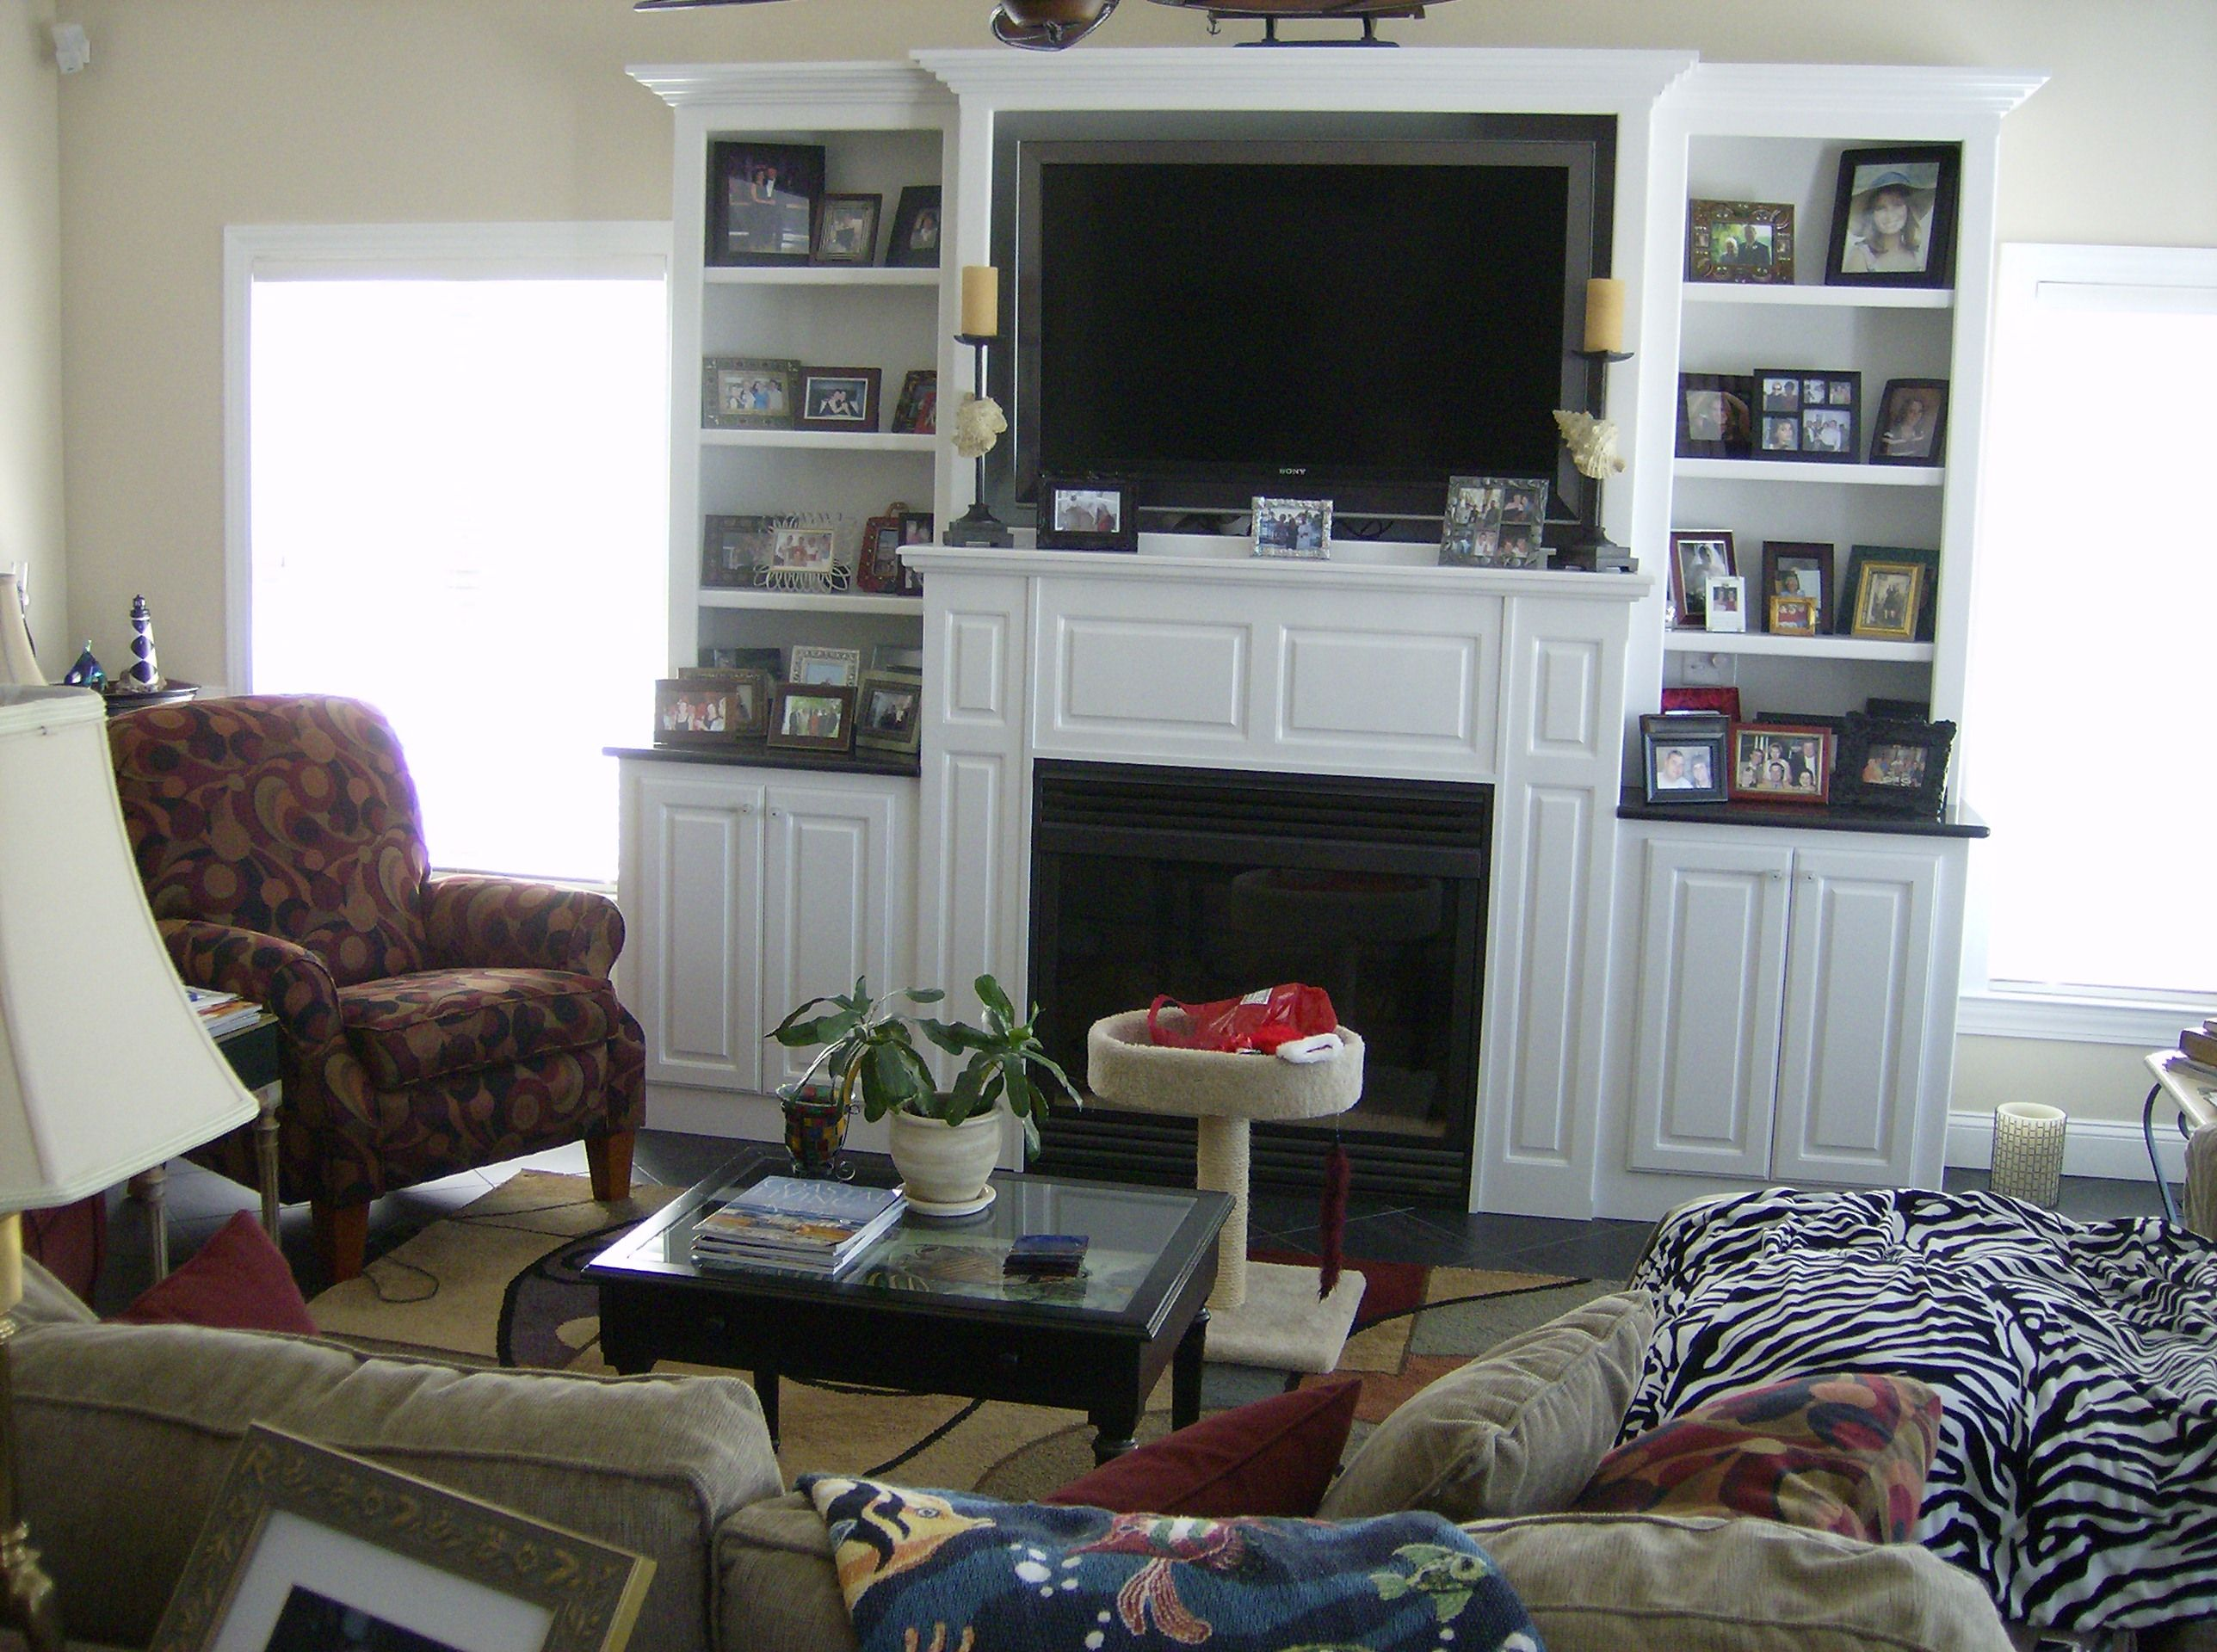 TV Over Fireplace Ideas | Familyroom with Fireplace and 52 ...